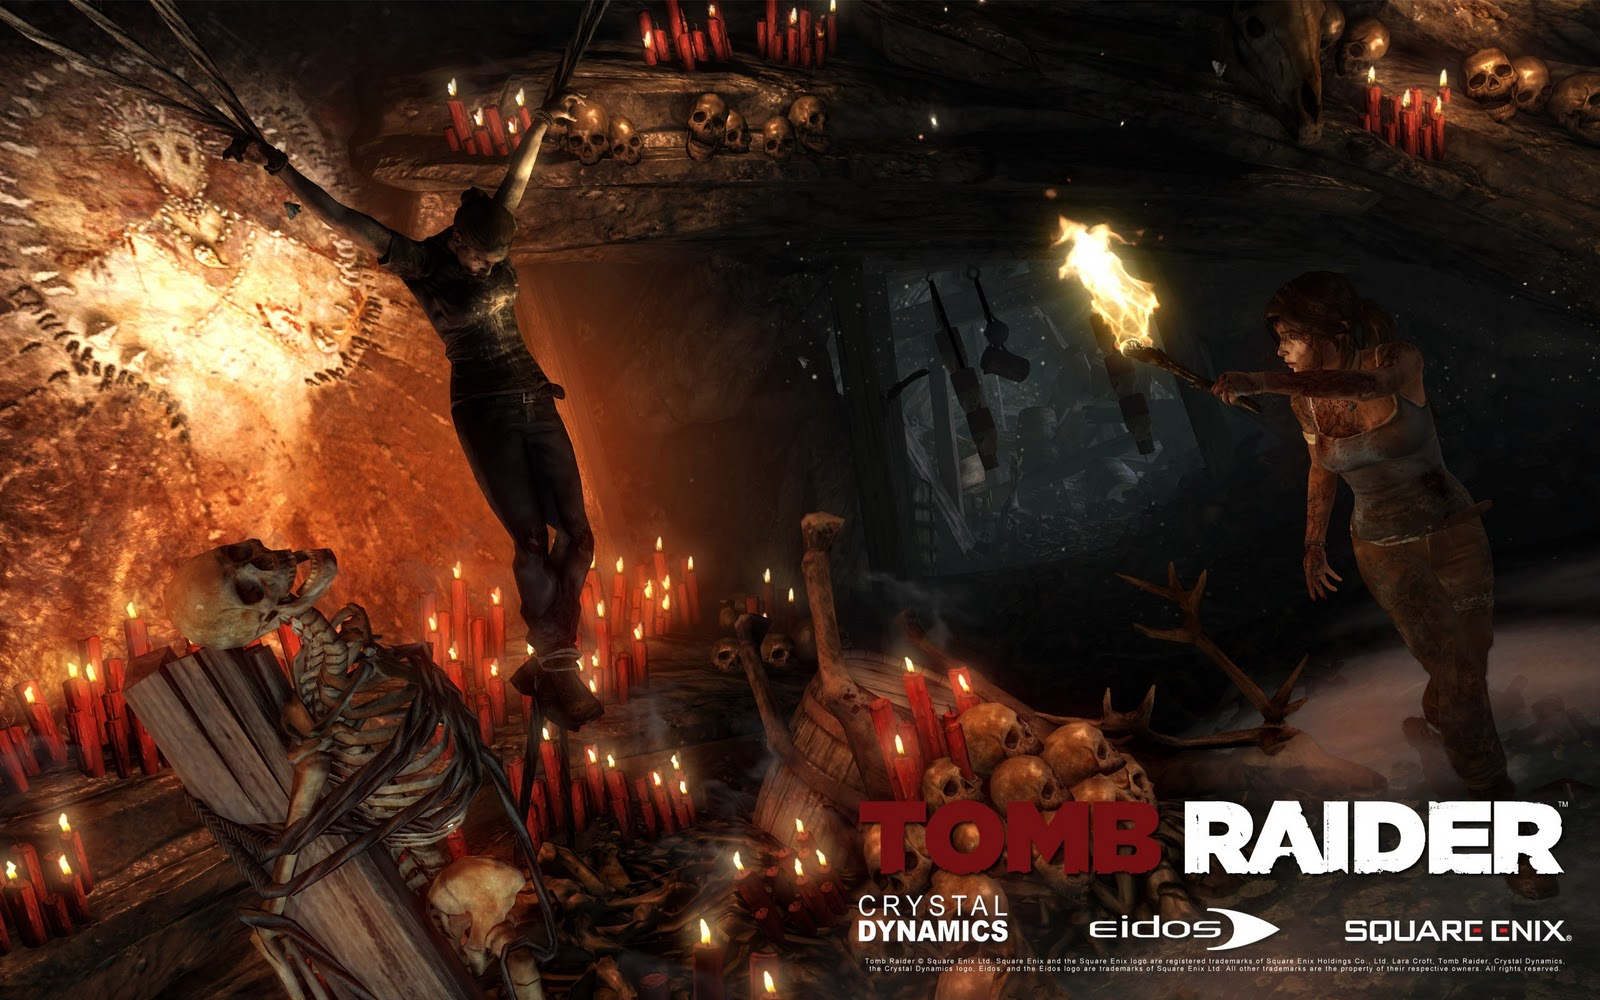 http://3.bp.blogspot.com/-axEWD1C_Hjc/Toe_kb8eVlI/AAAAAAAADjE/C6A6m6Q5wGo/s1600/Tomb_Raider_wallpapers+%25282%2529.jpg